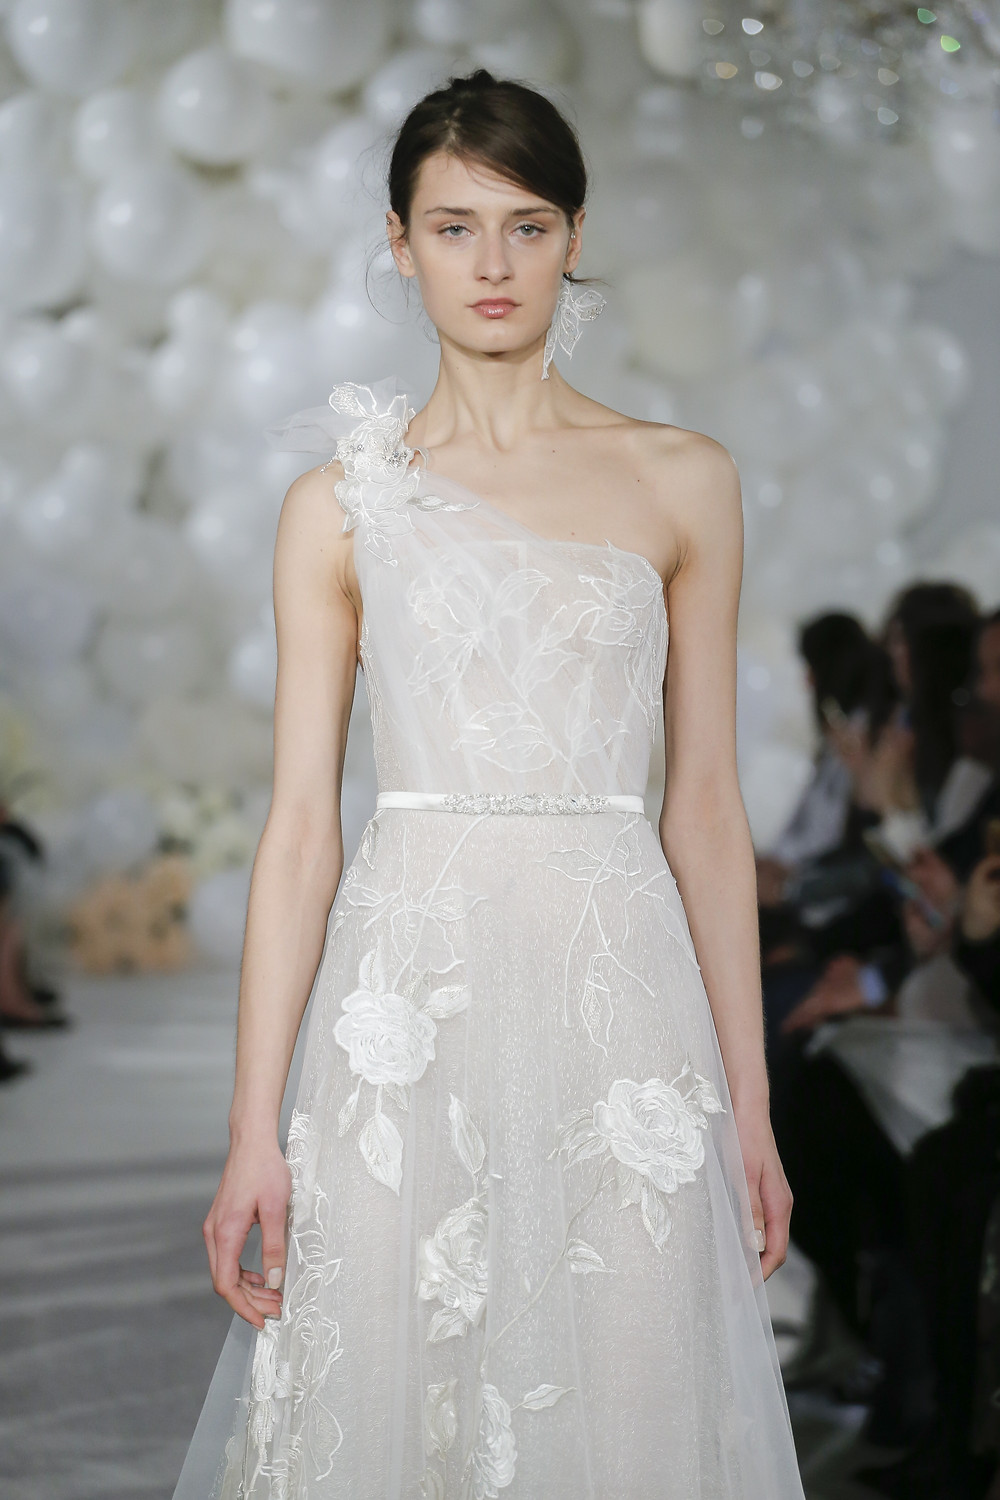 A Mira Zwillinger soft, gauzy one shoulder wedding dress, with a tulle A-line skirt and floral embellishments